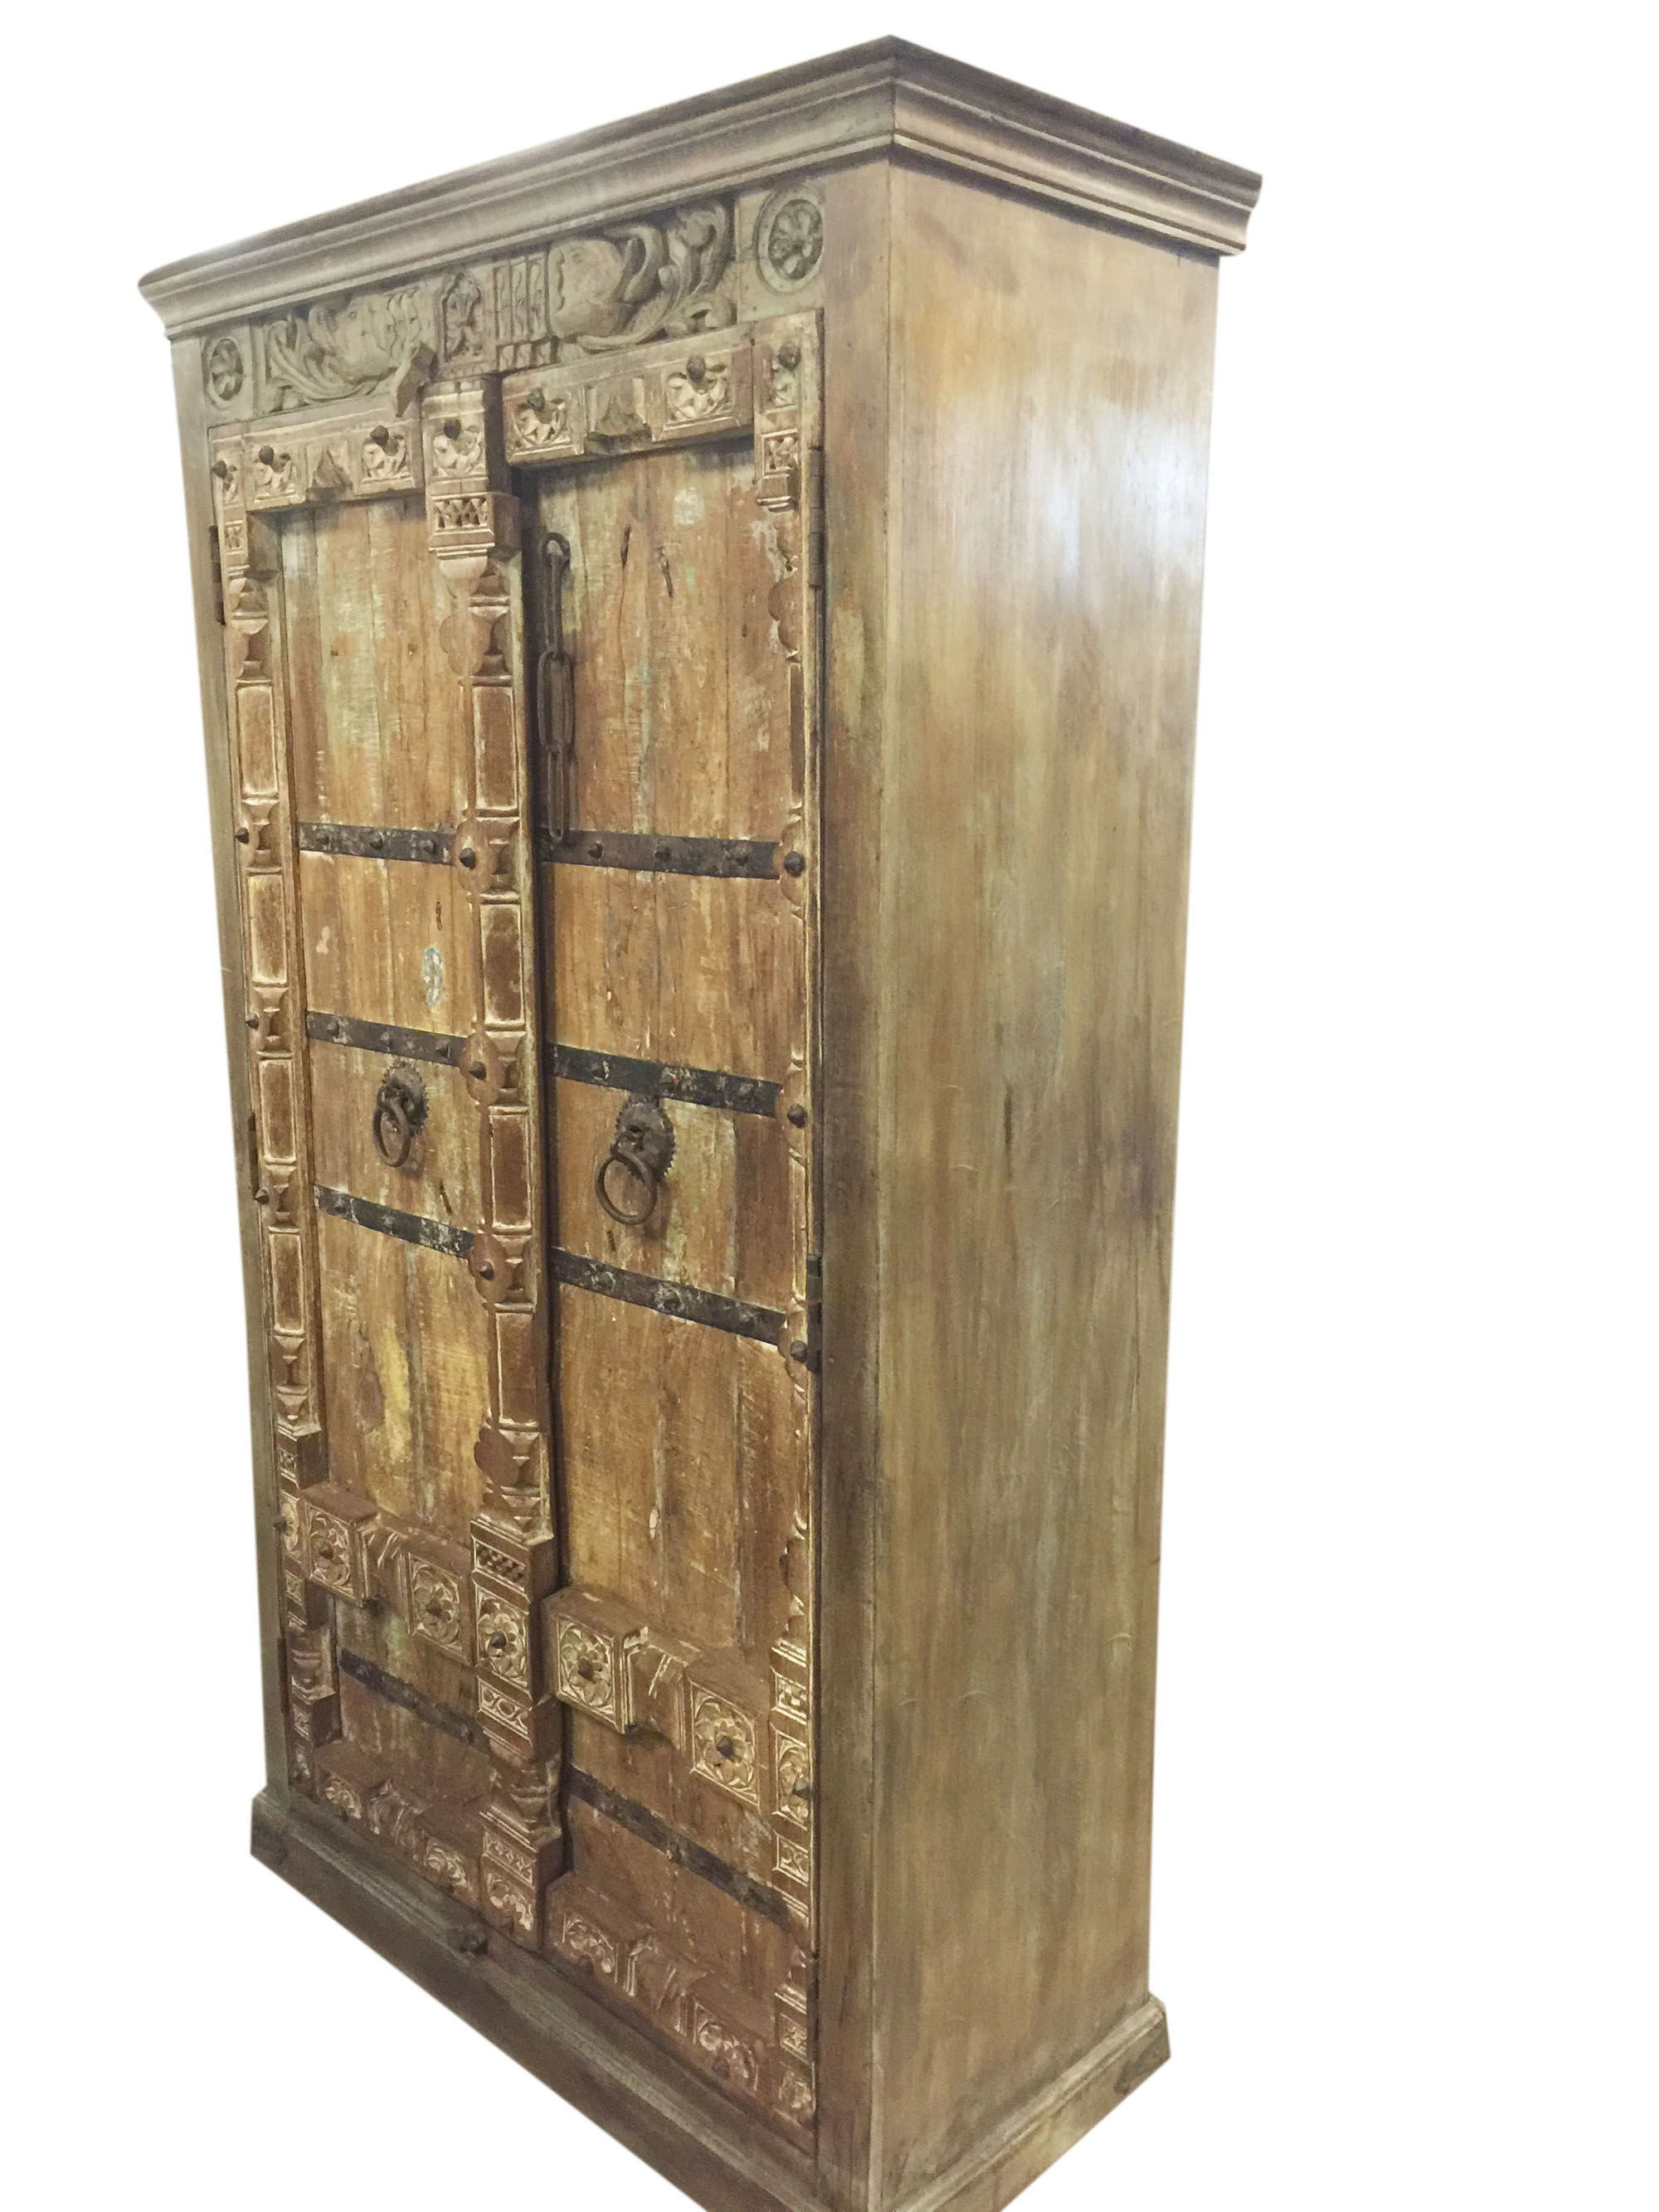 Ordinaire Mogul Antique Wardrobe Old Doors Indian Furniture Iron Storage Cabinet  Armoire NATURAL WOOD Decor